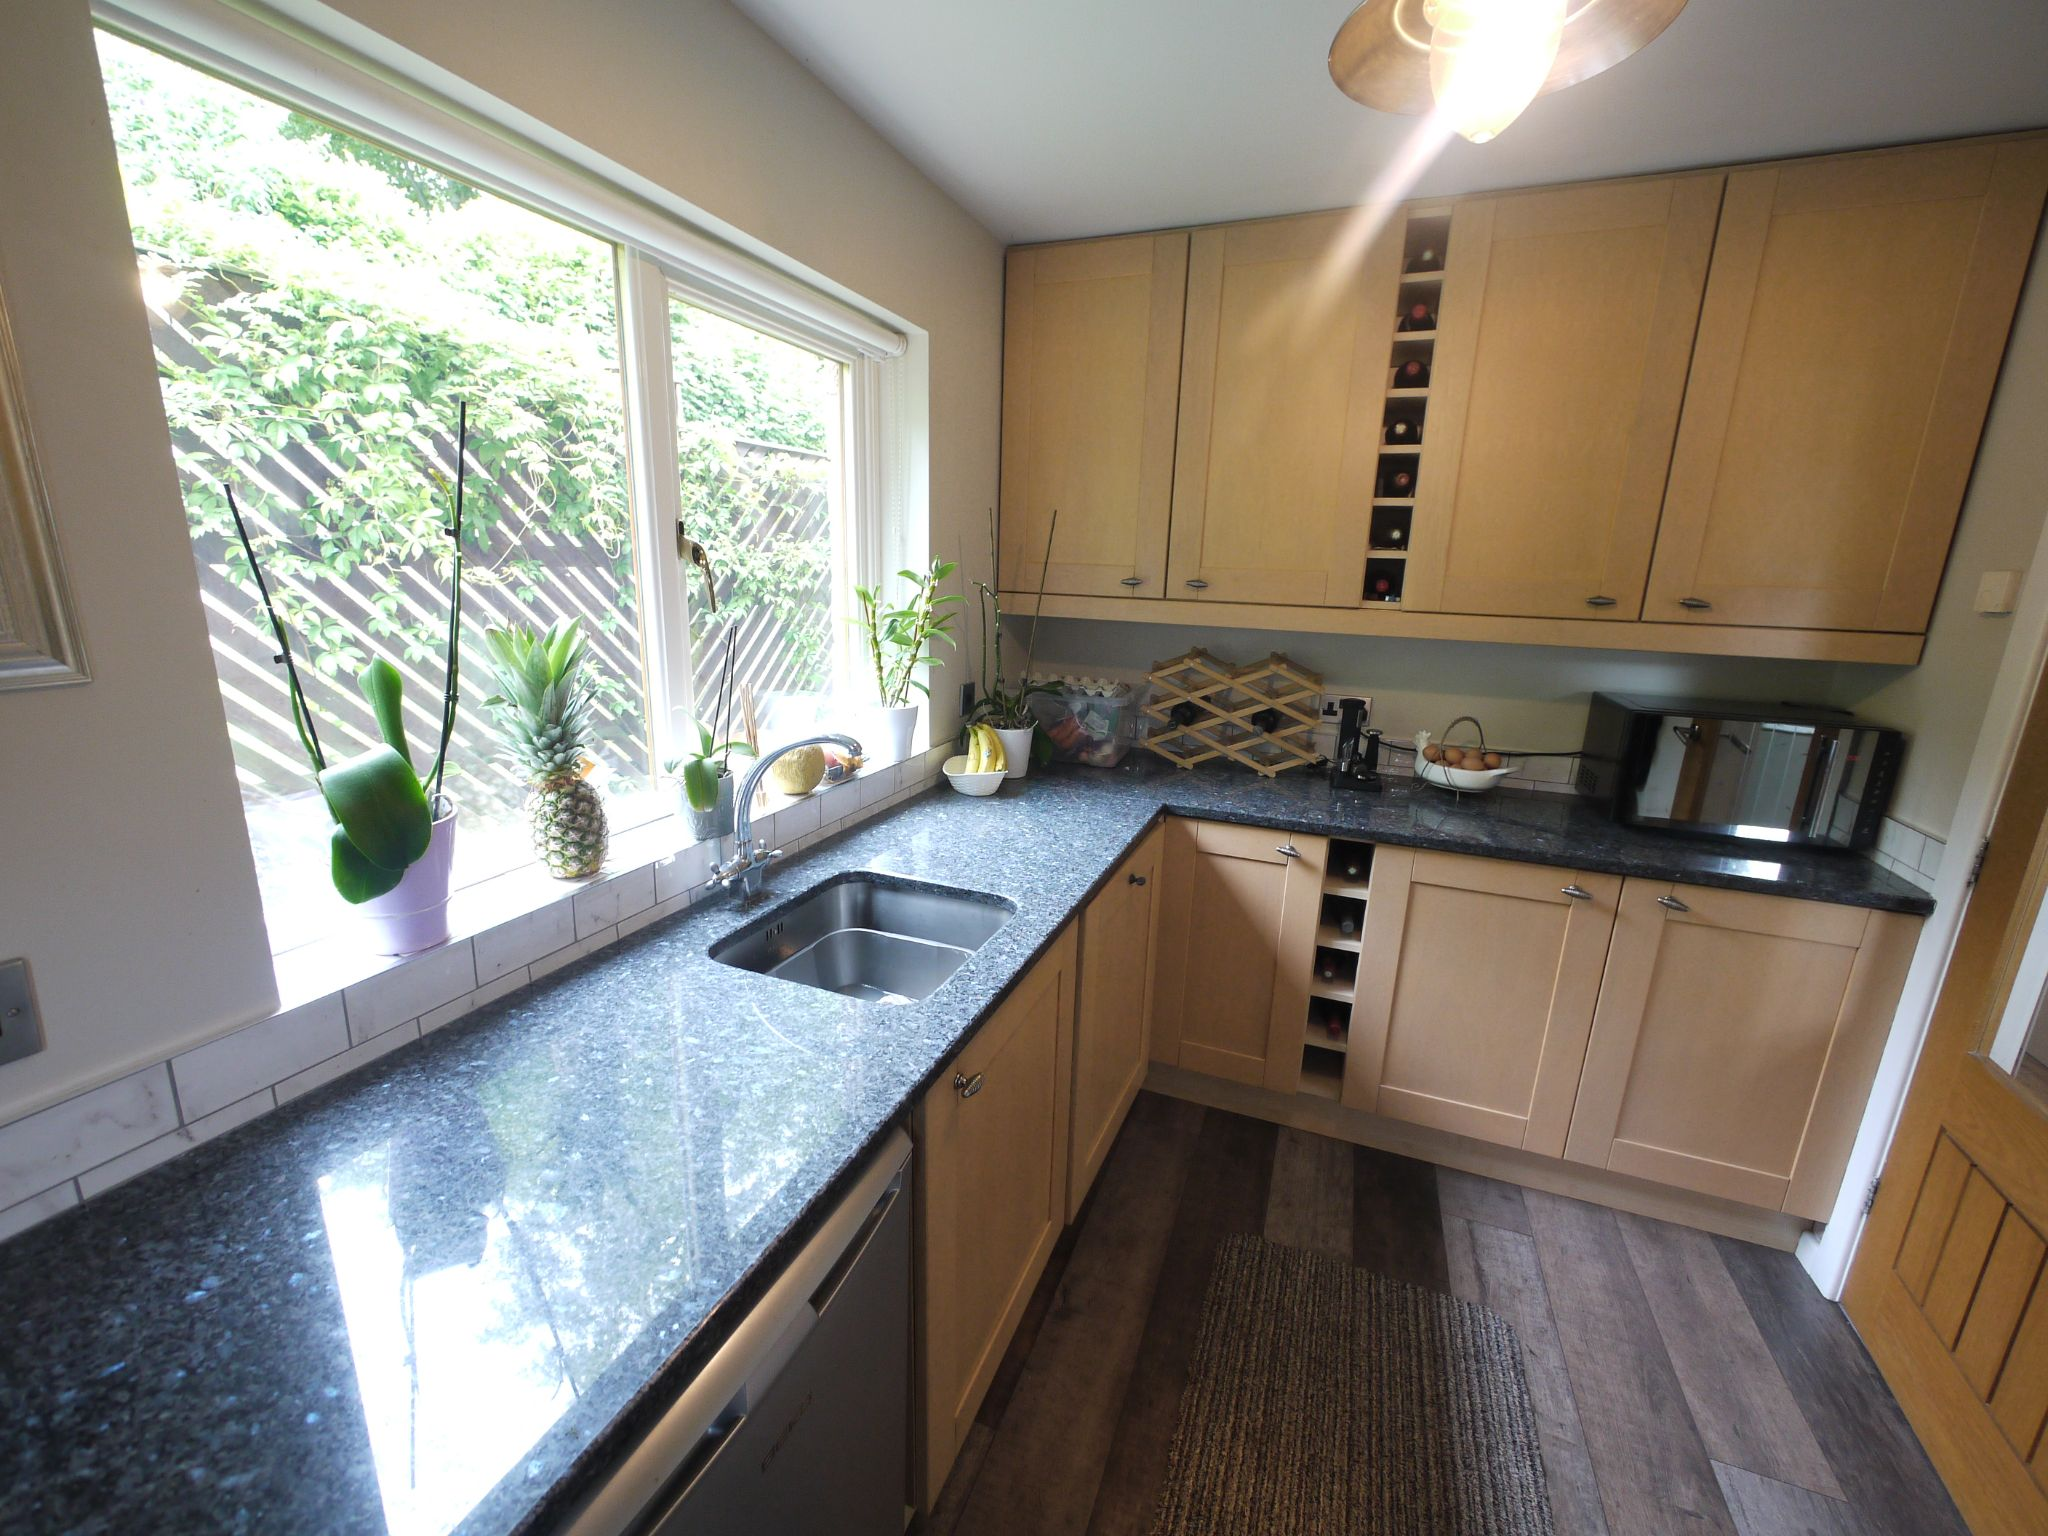 4 bedroom detached house For Sale in Brighouse - Utility Room.